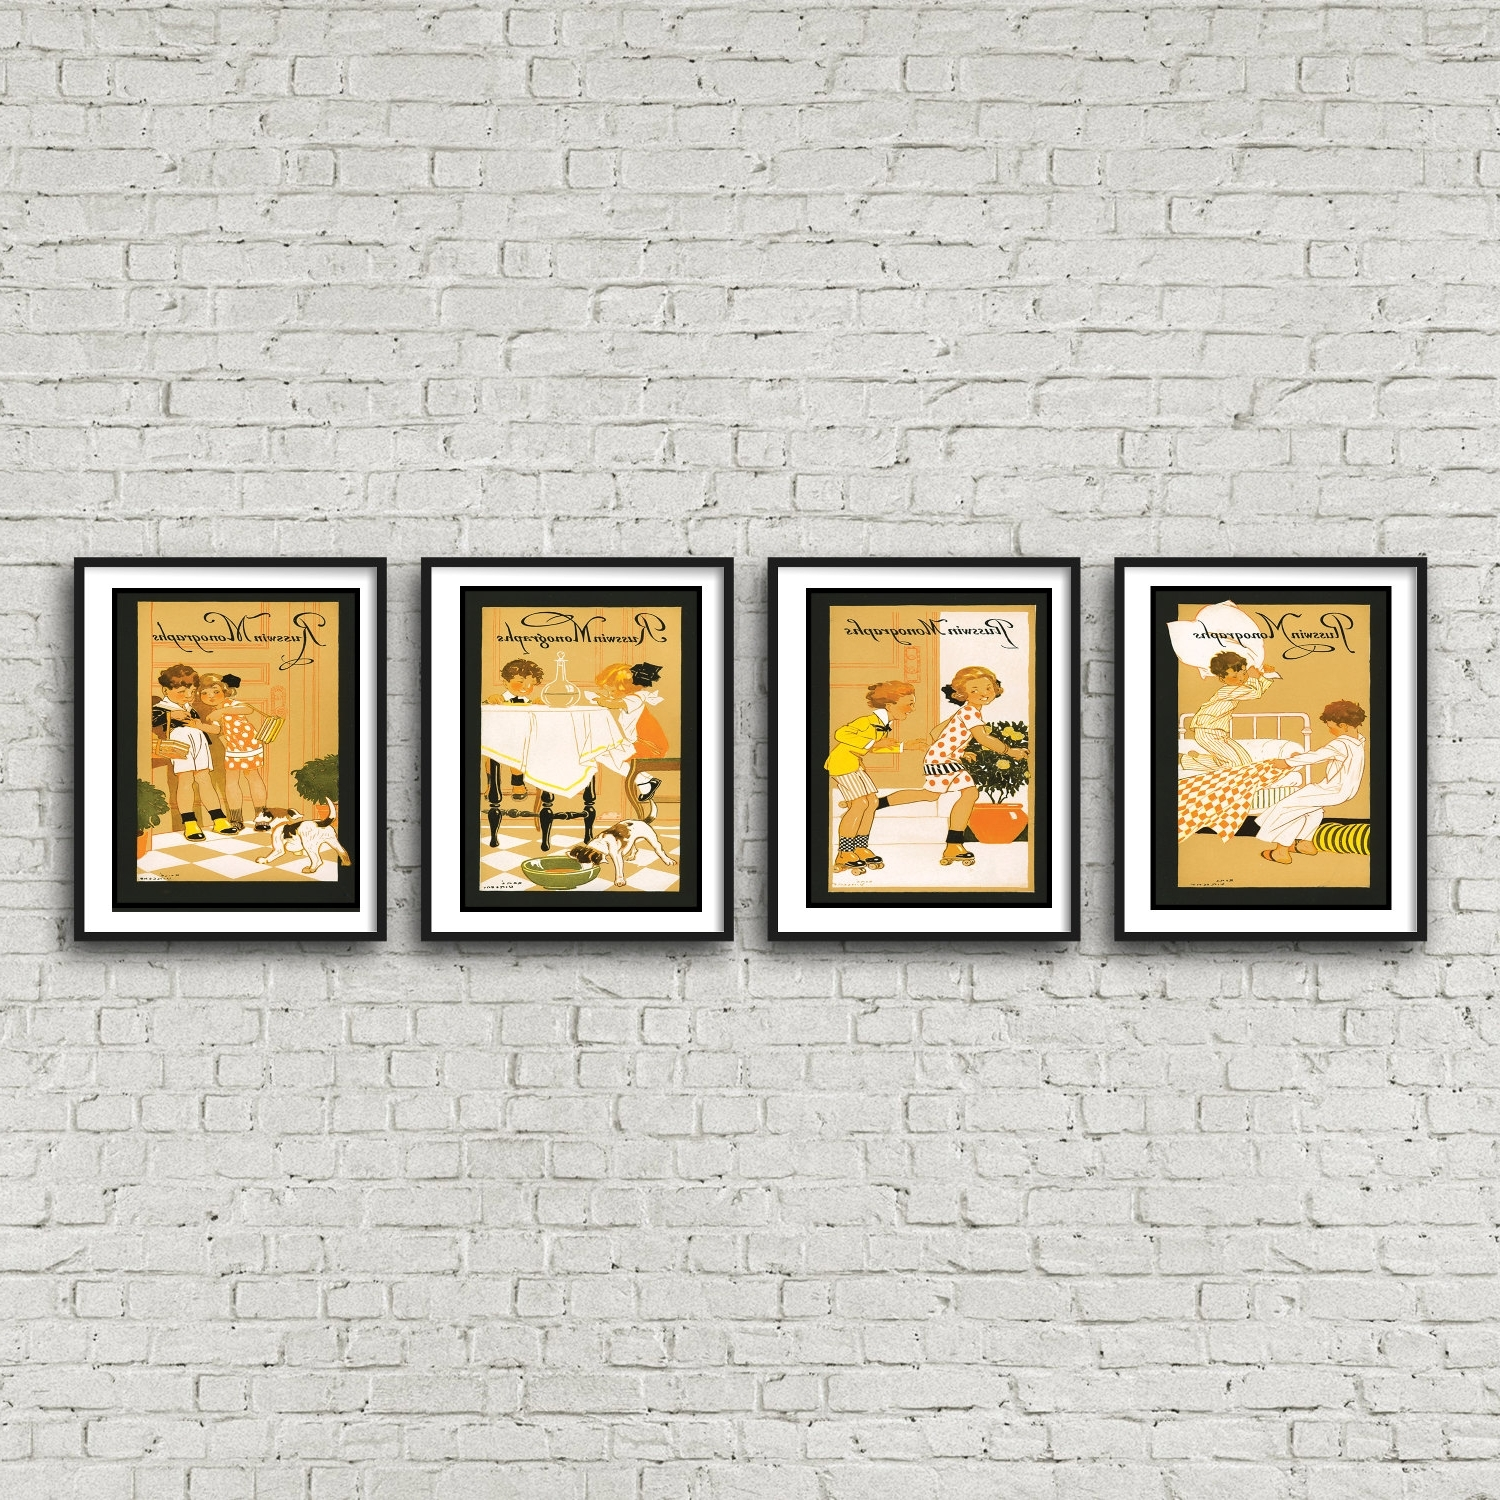 Framed Art Deco Prints For Most Popular 4 Piece Wall Art – Children's Art Deco Nursery Art  Free Shipping (View 6 of 15)